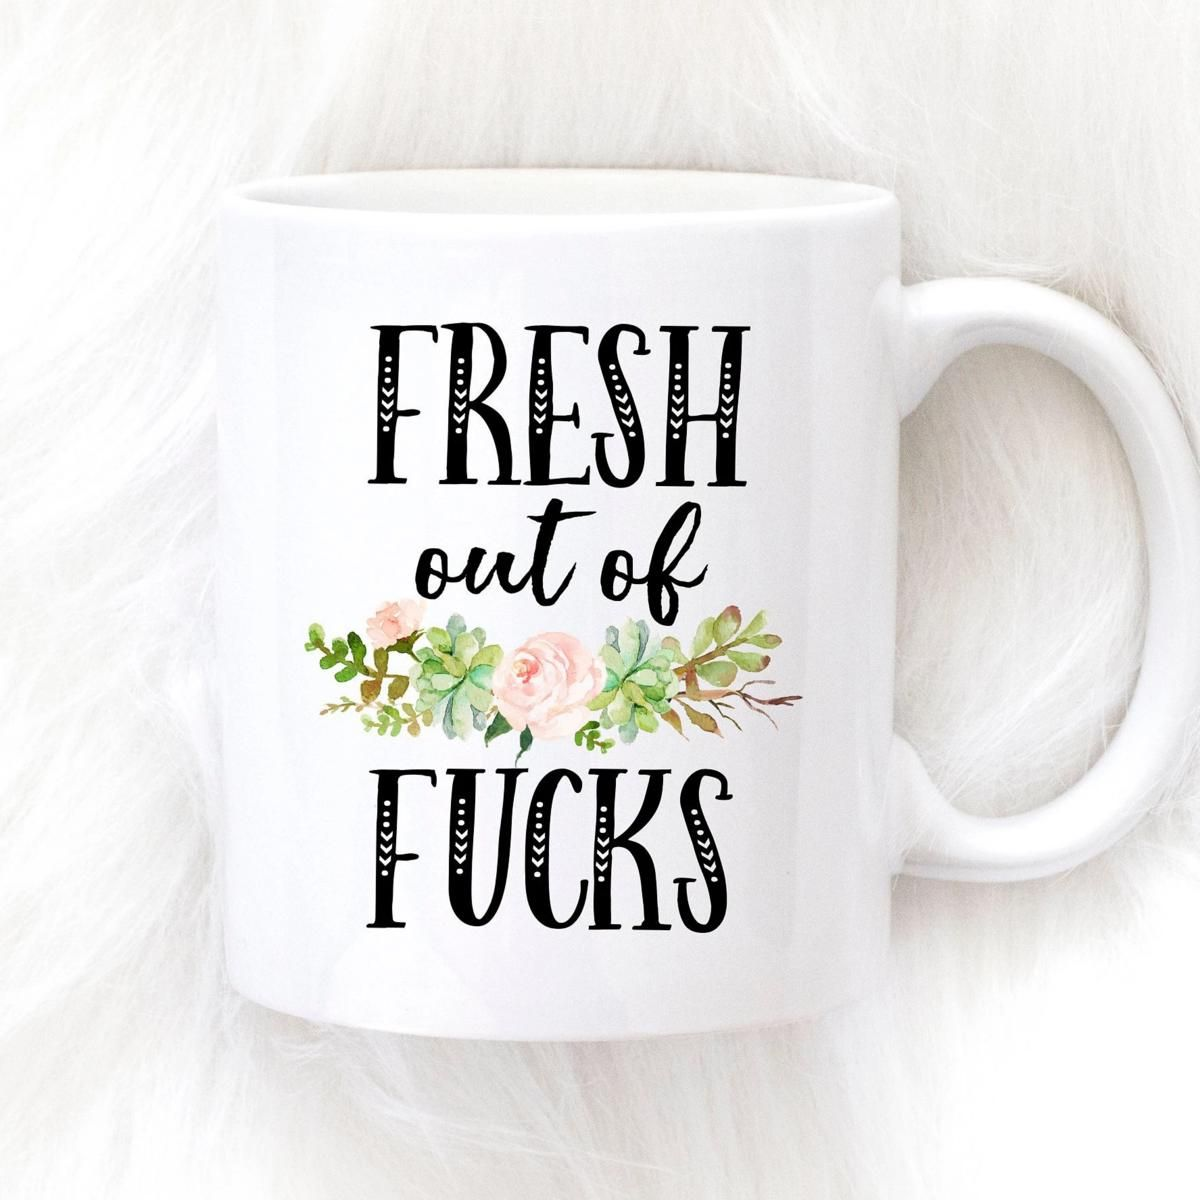 Fresh Out of Fucks Mug - Funny mug